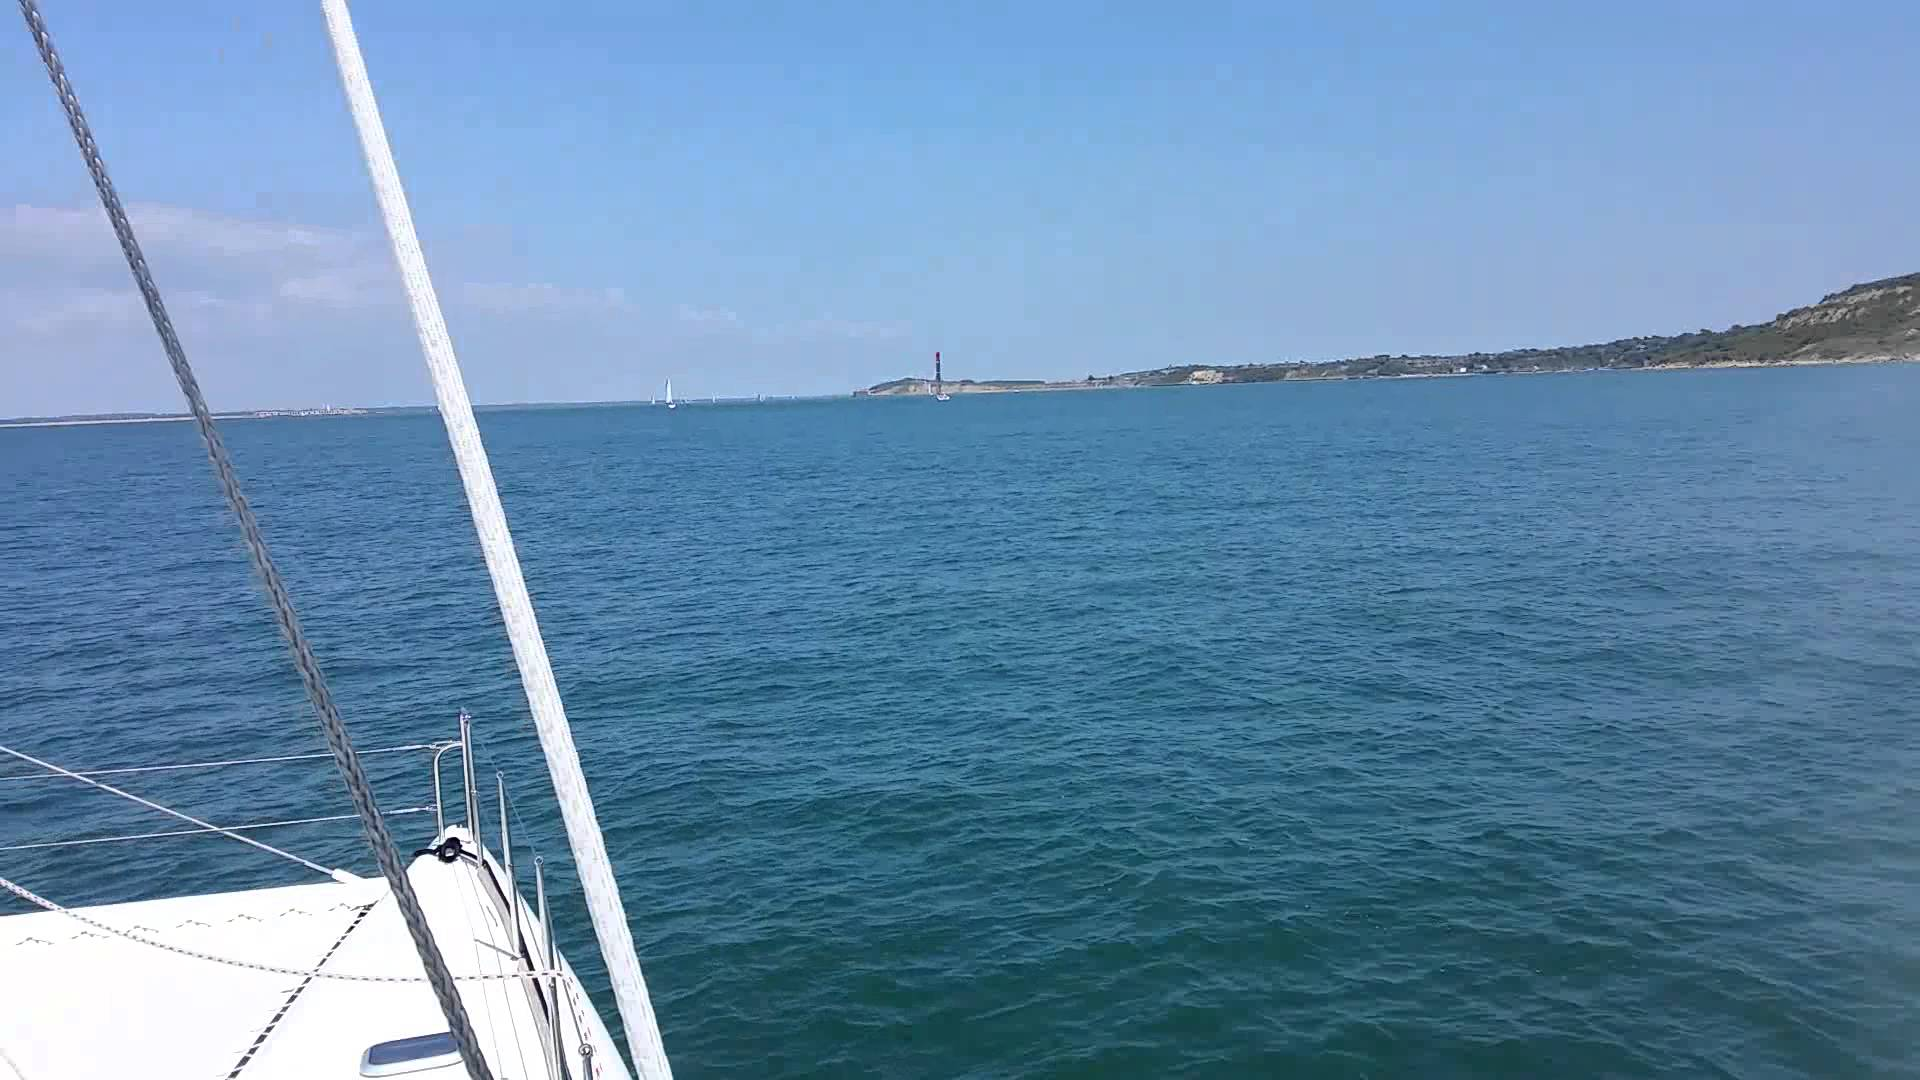 Rapier 400 sailing off the Isle of Wight